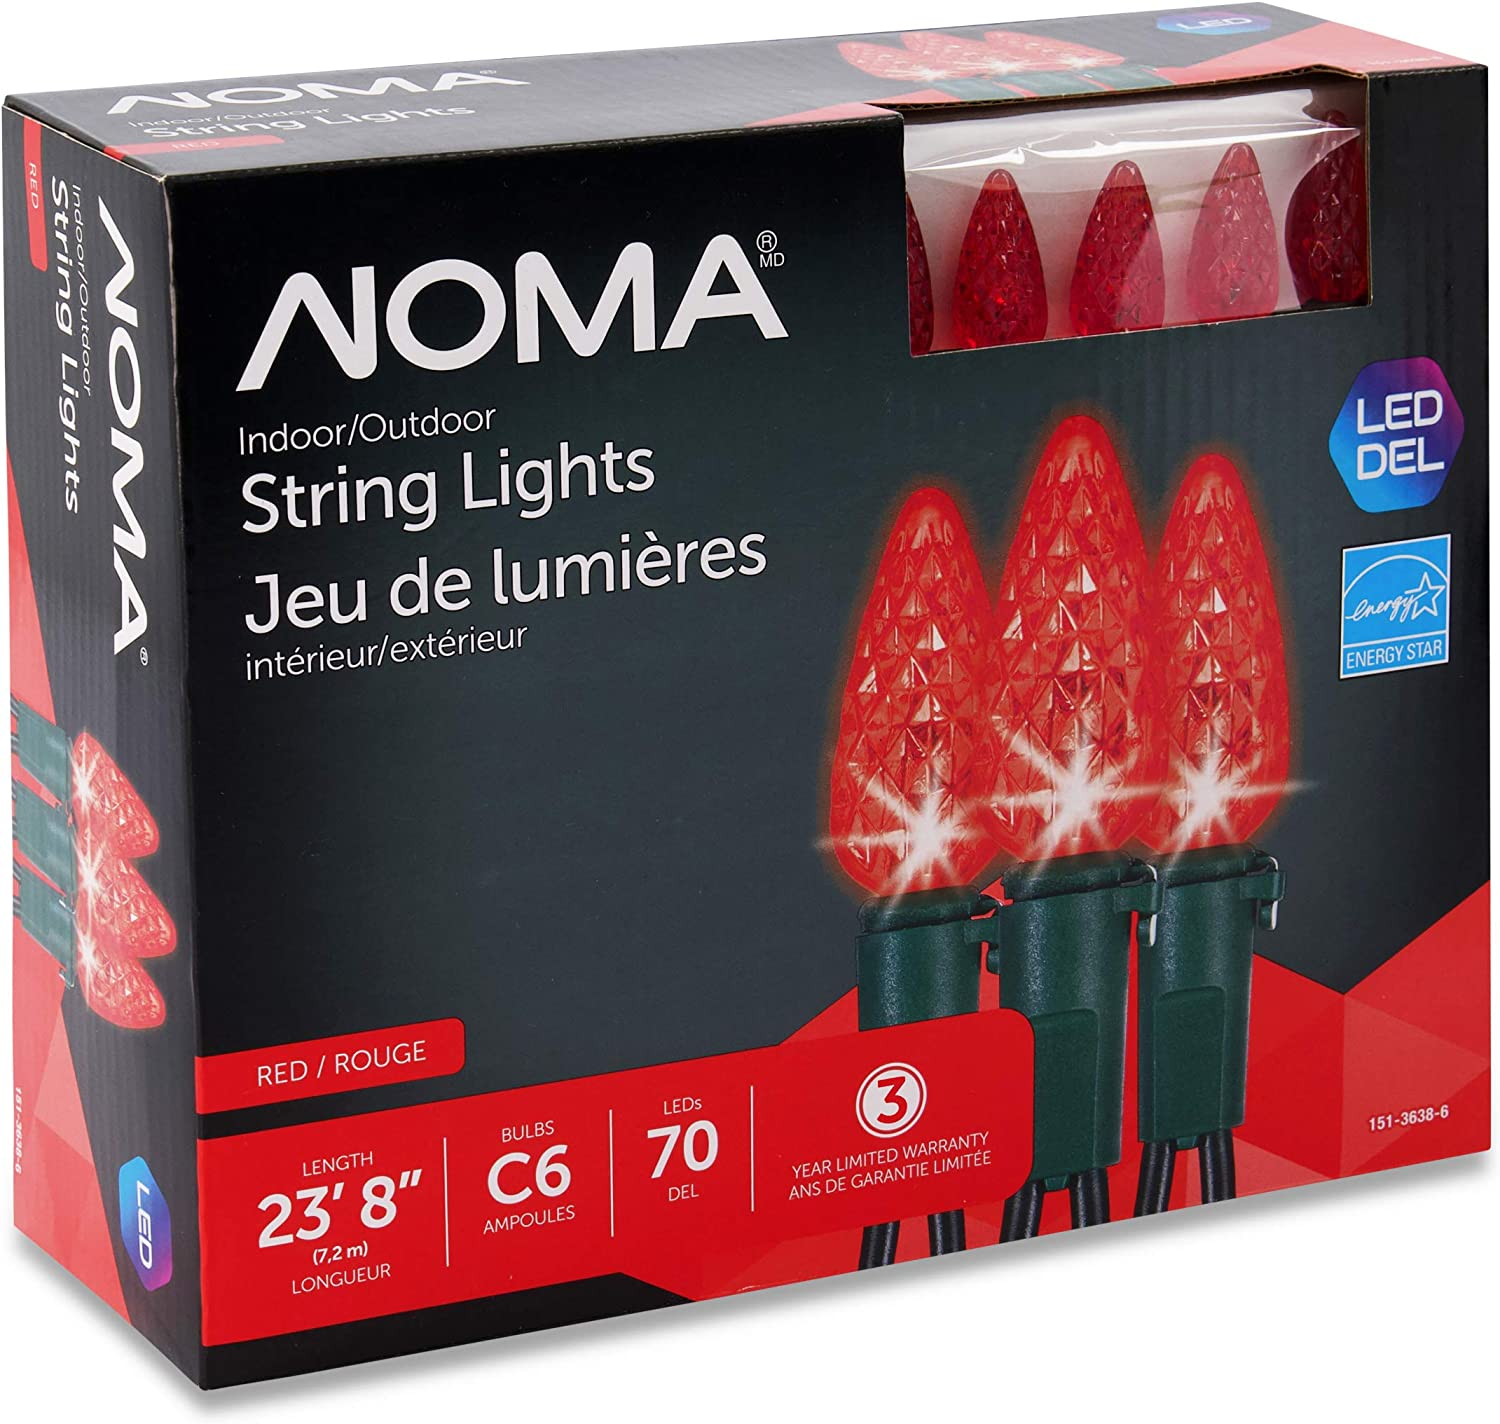 "NOMA LED Christmas Lights | 70-Count C6 Red Bulbs | 23' 8"" String Light 